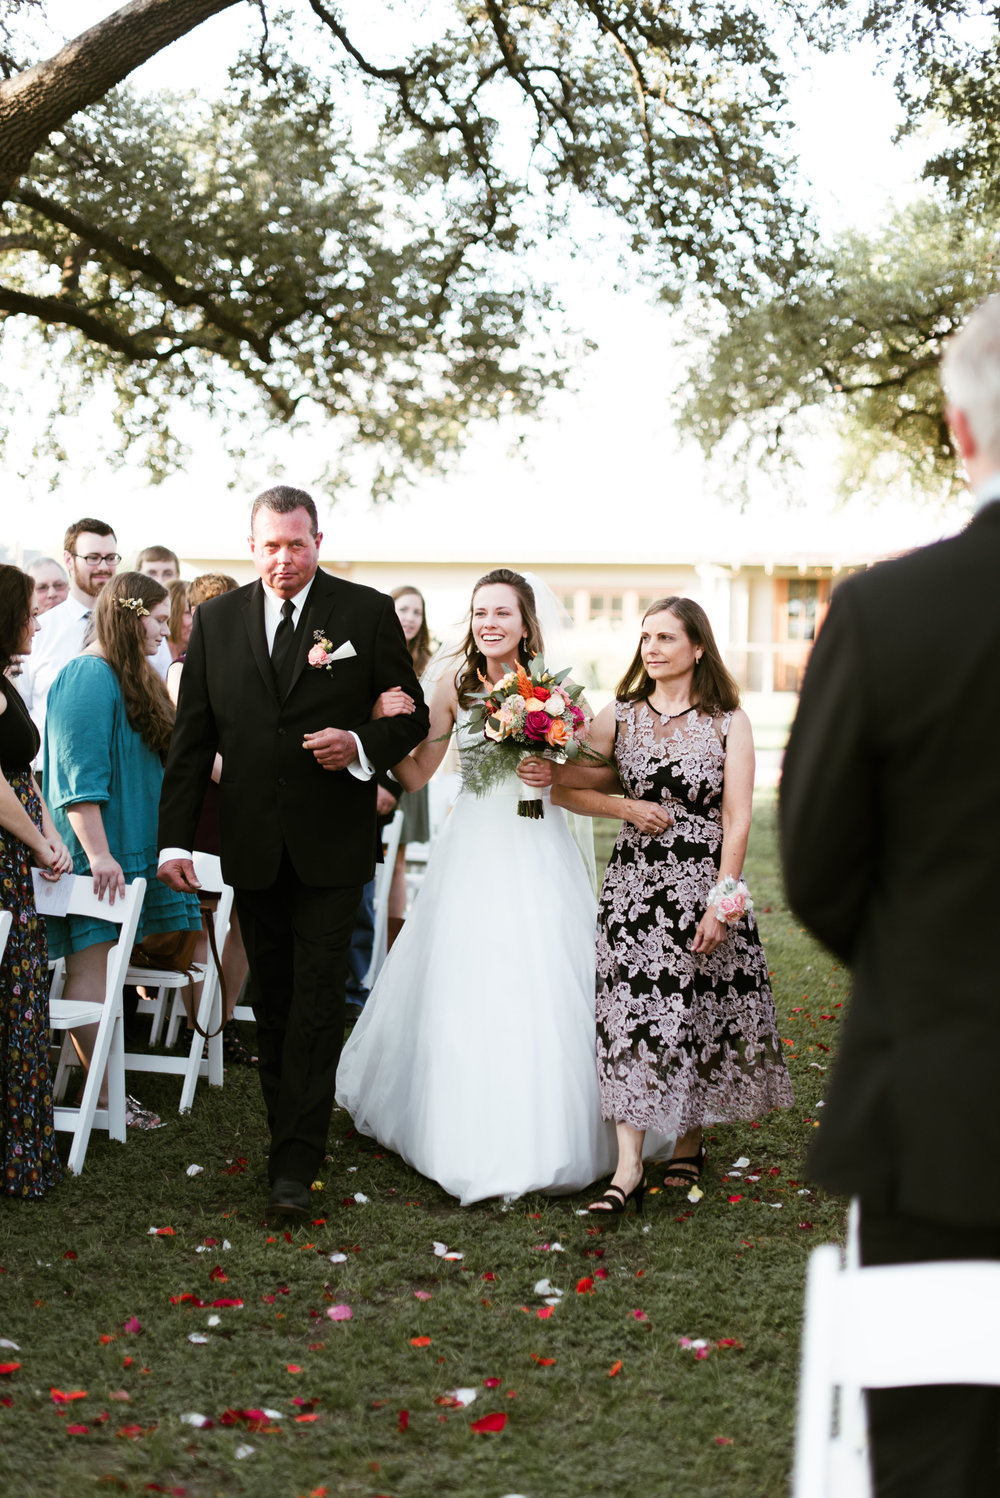 Henkel Hall Wedding, Round Top | Houston Natural Light Wedding Photographer | www.jordanmitchellphotography.com